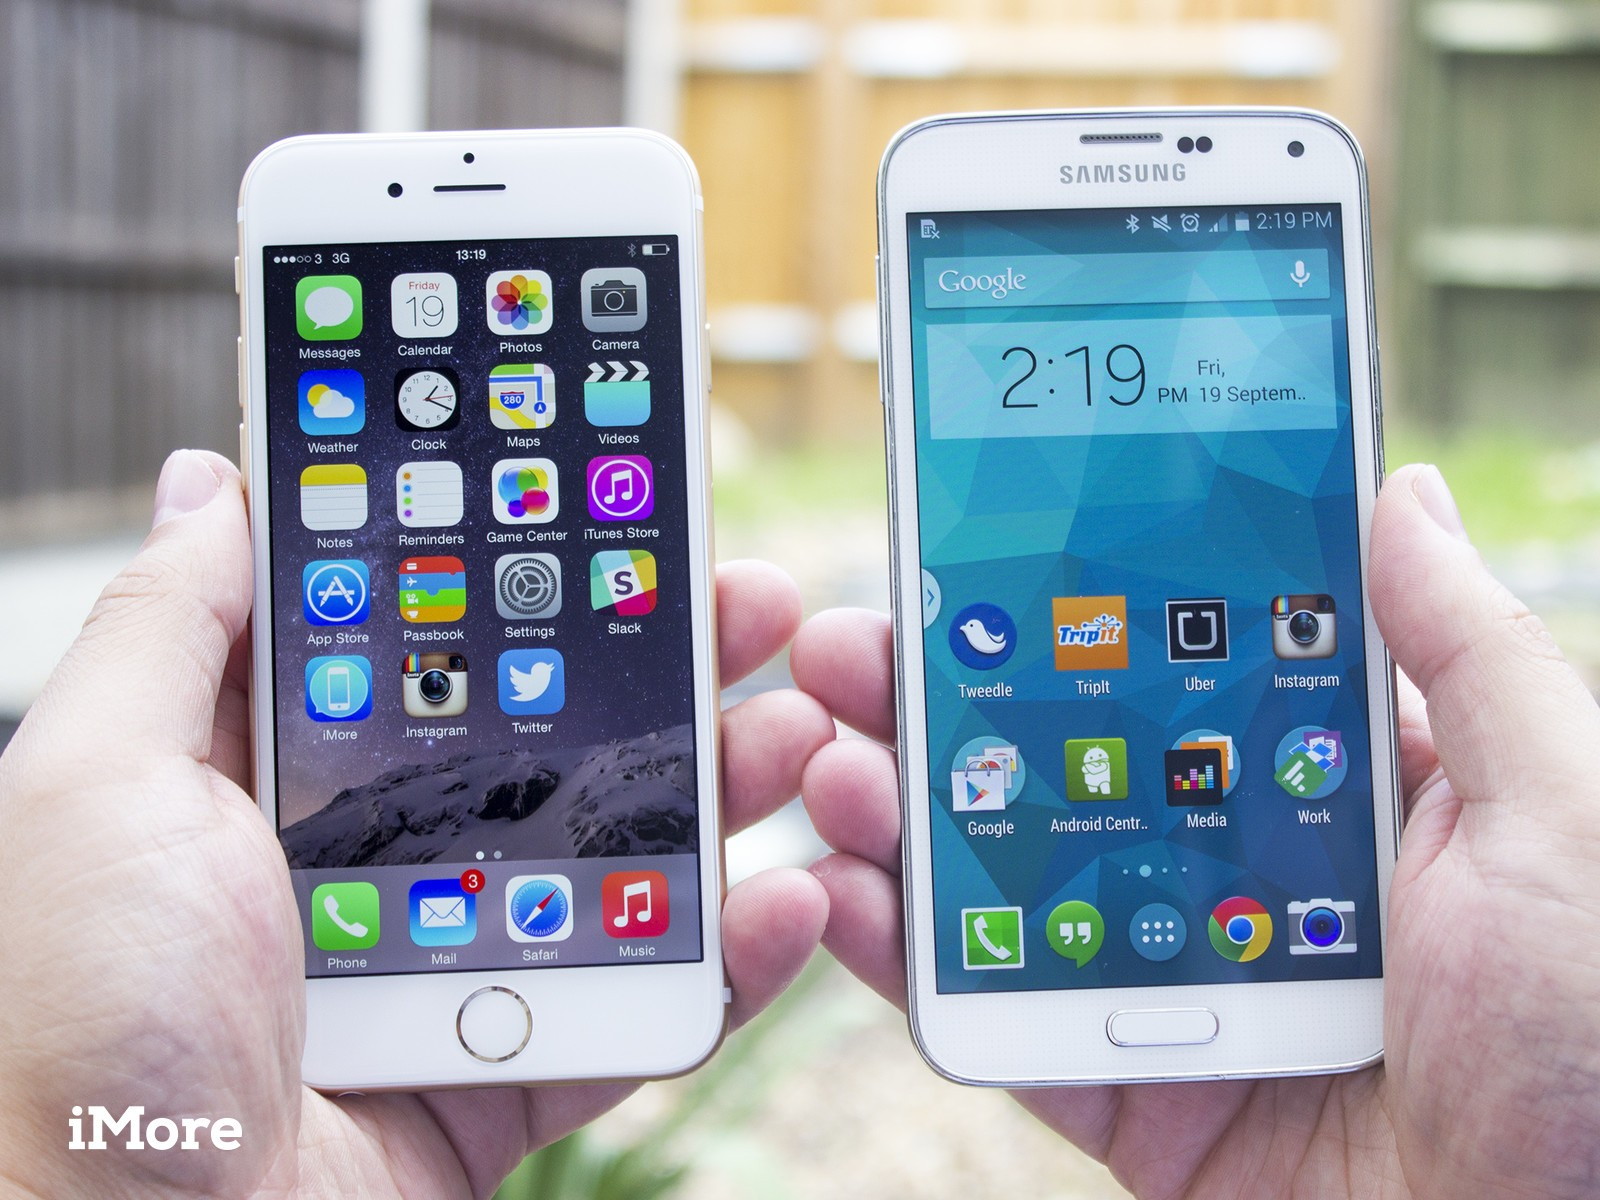 Samsung's weakness is further validation of Apple's model